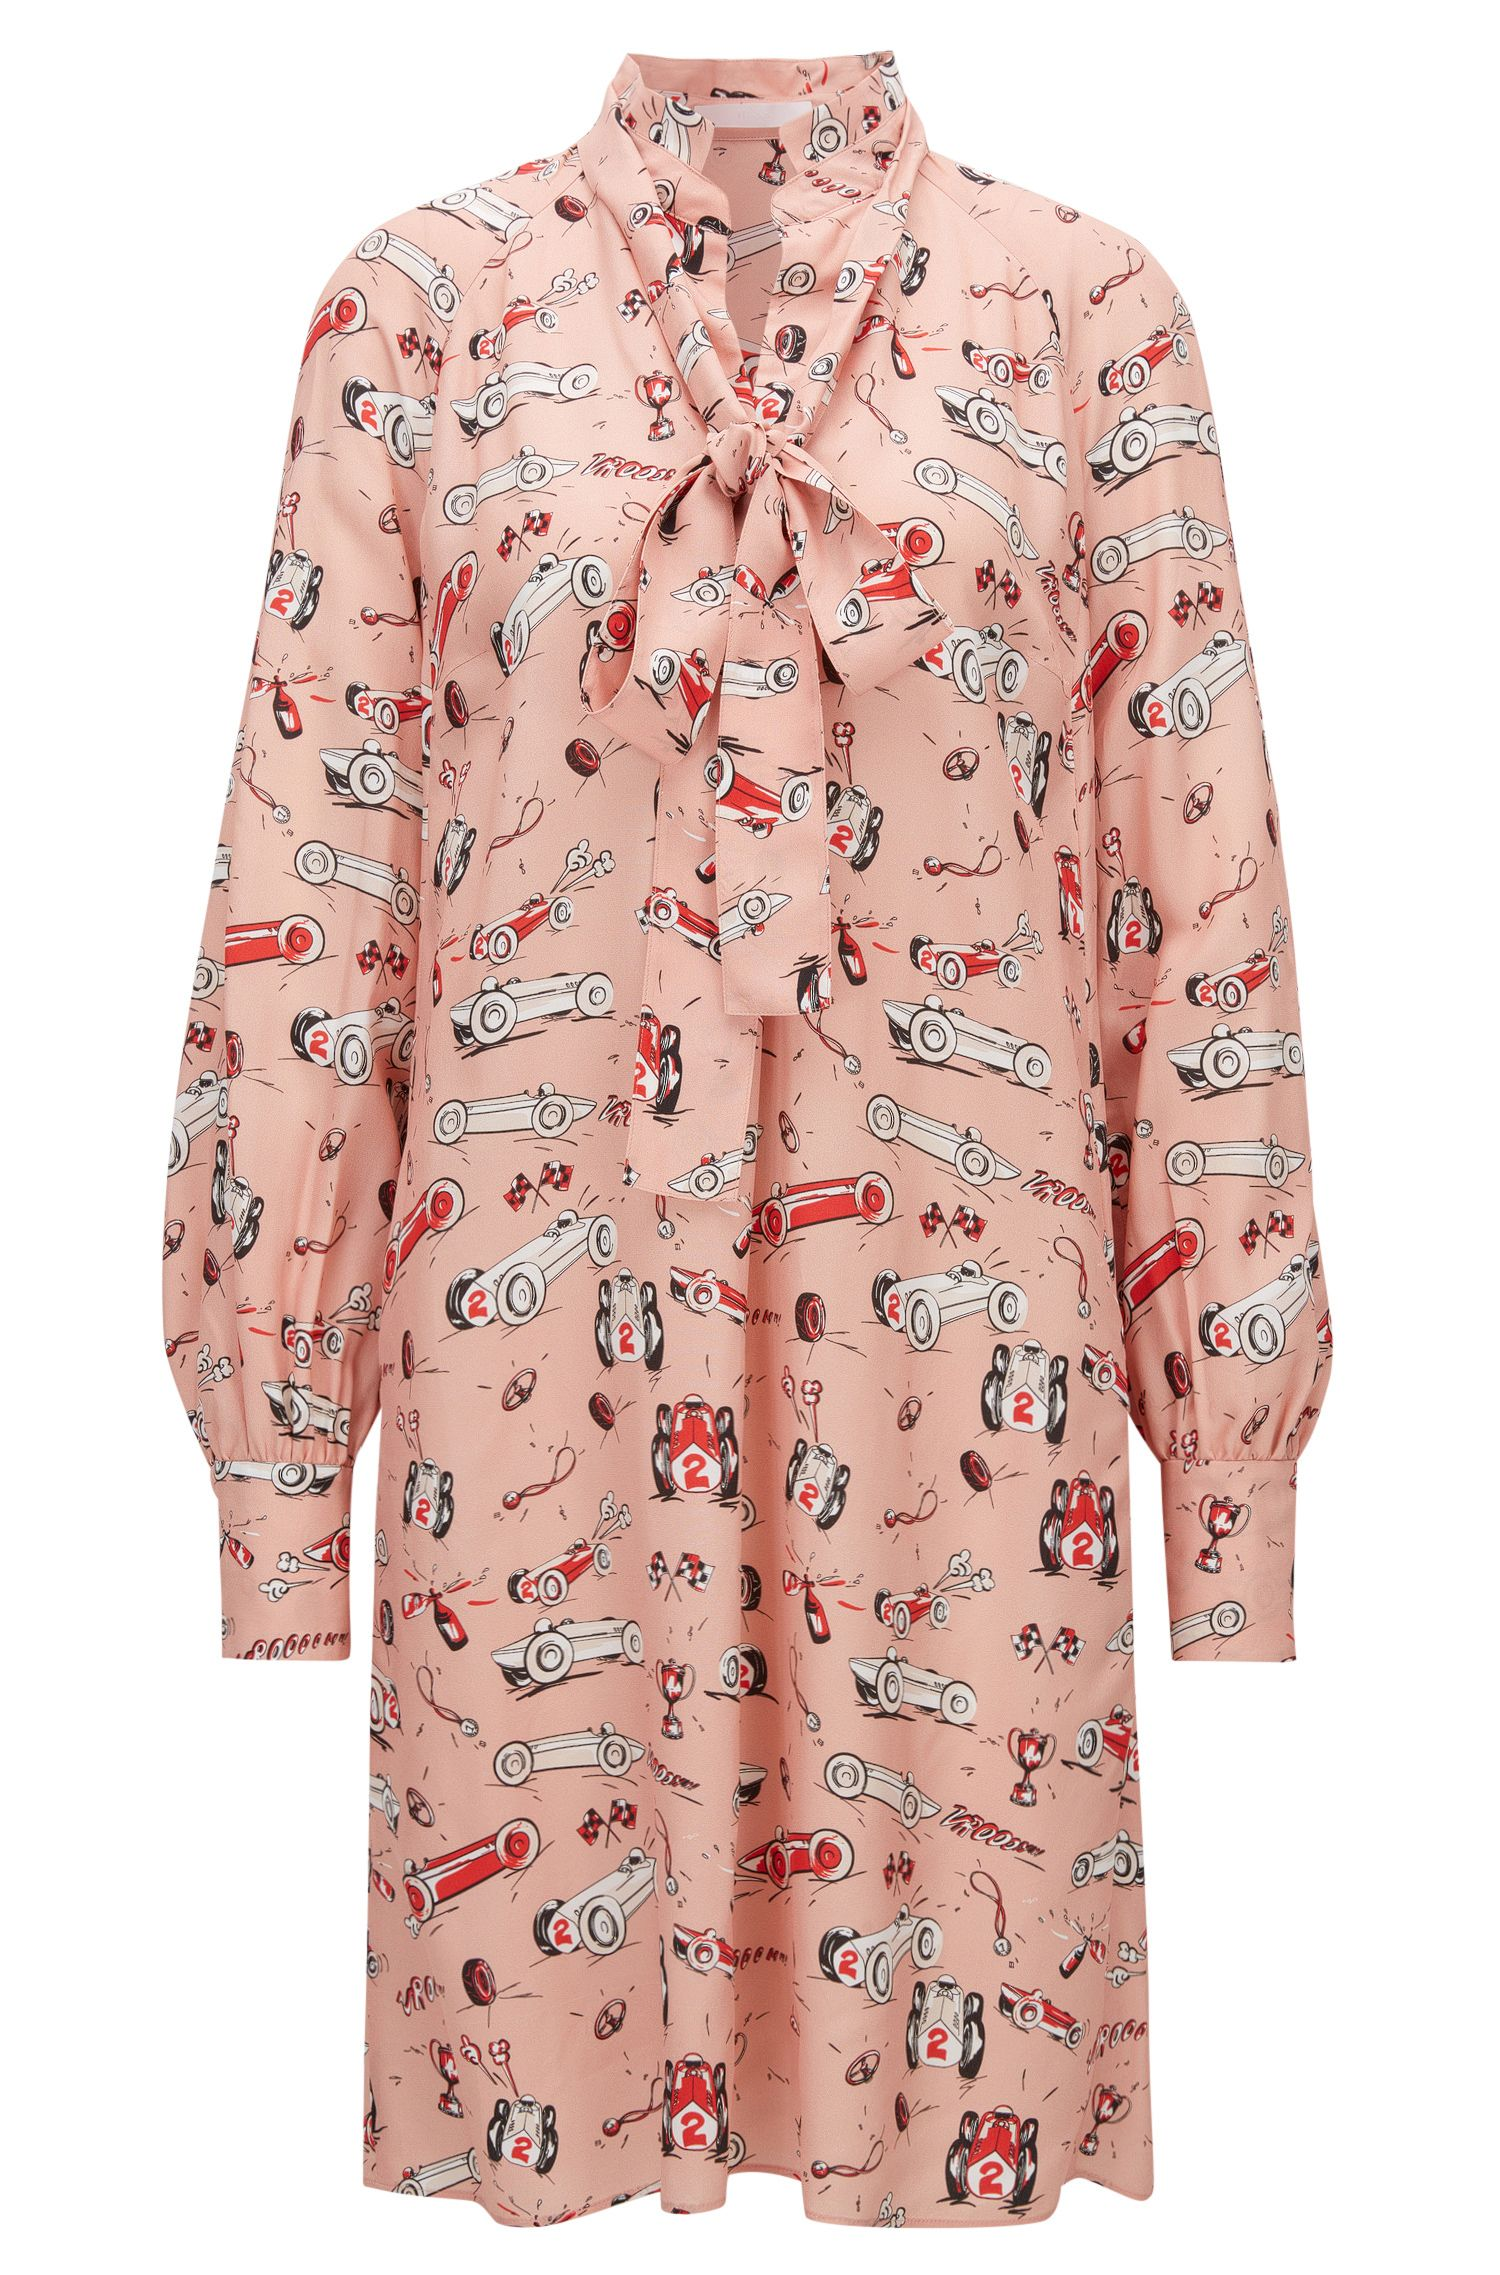 Race-car print long-sleeved dress with bow neckline